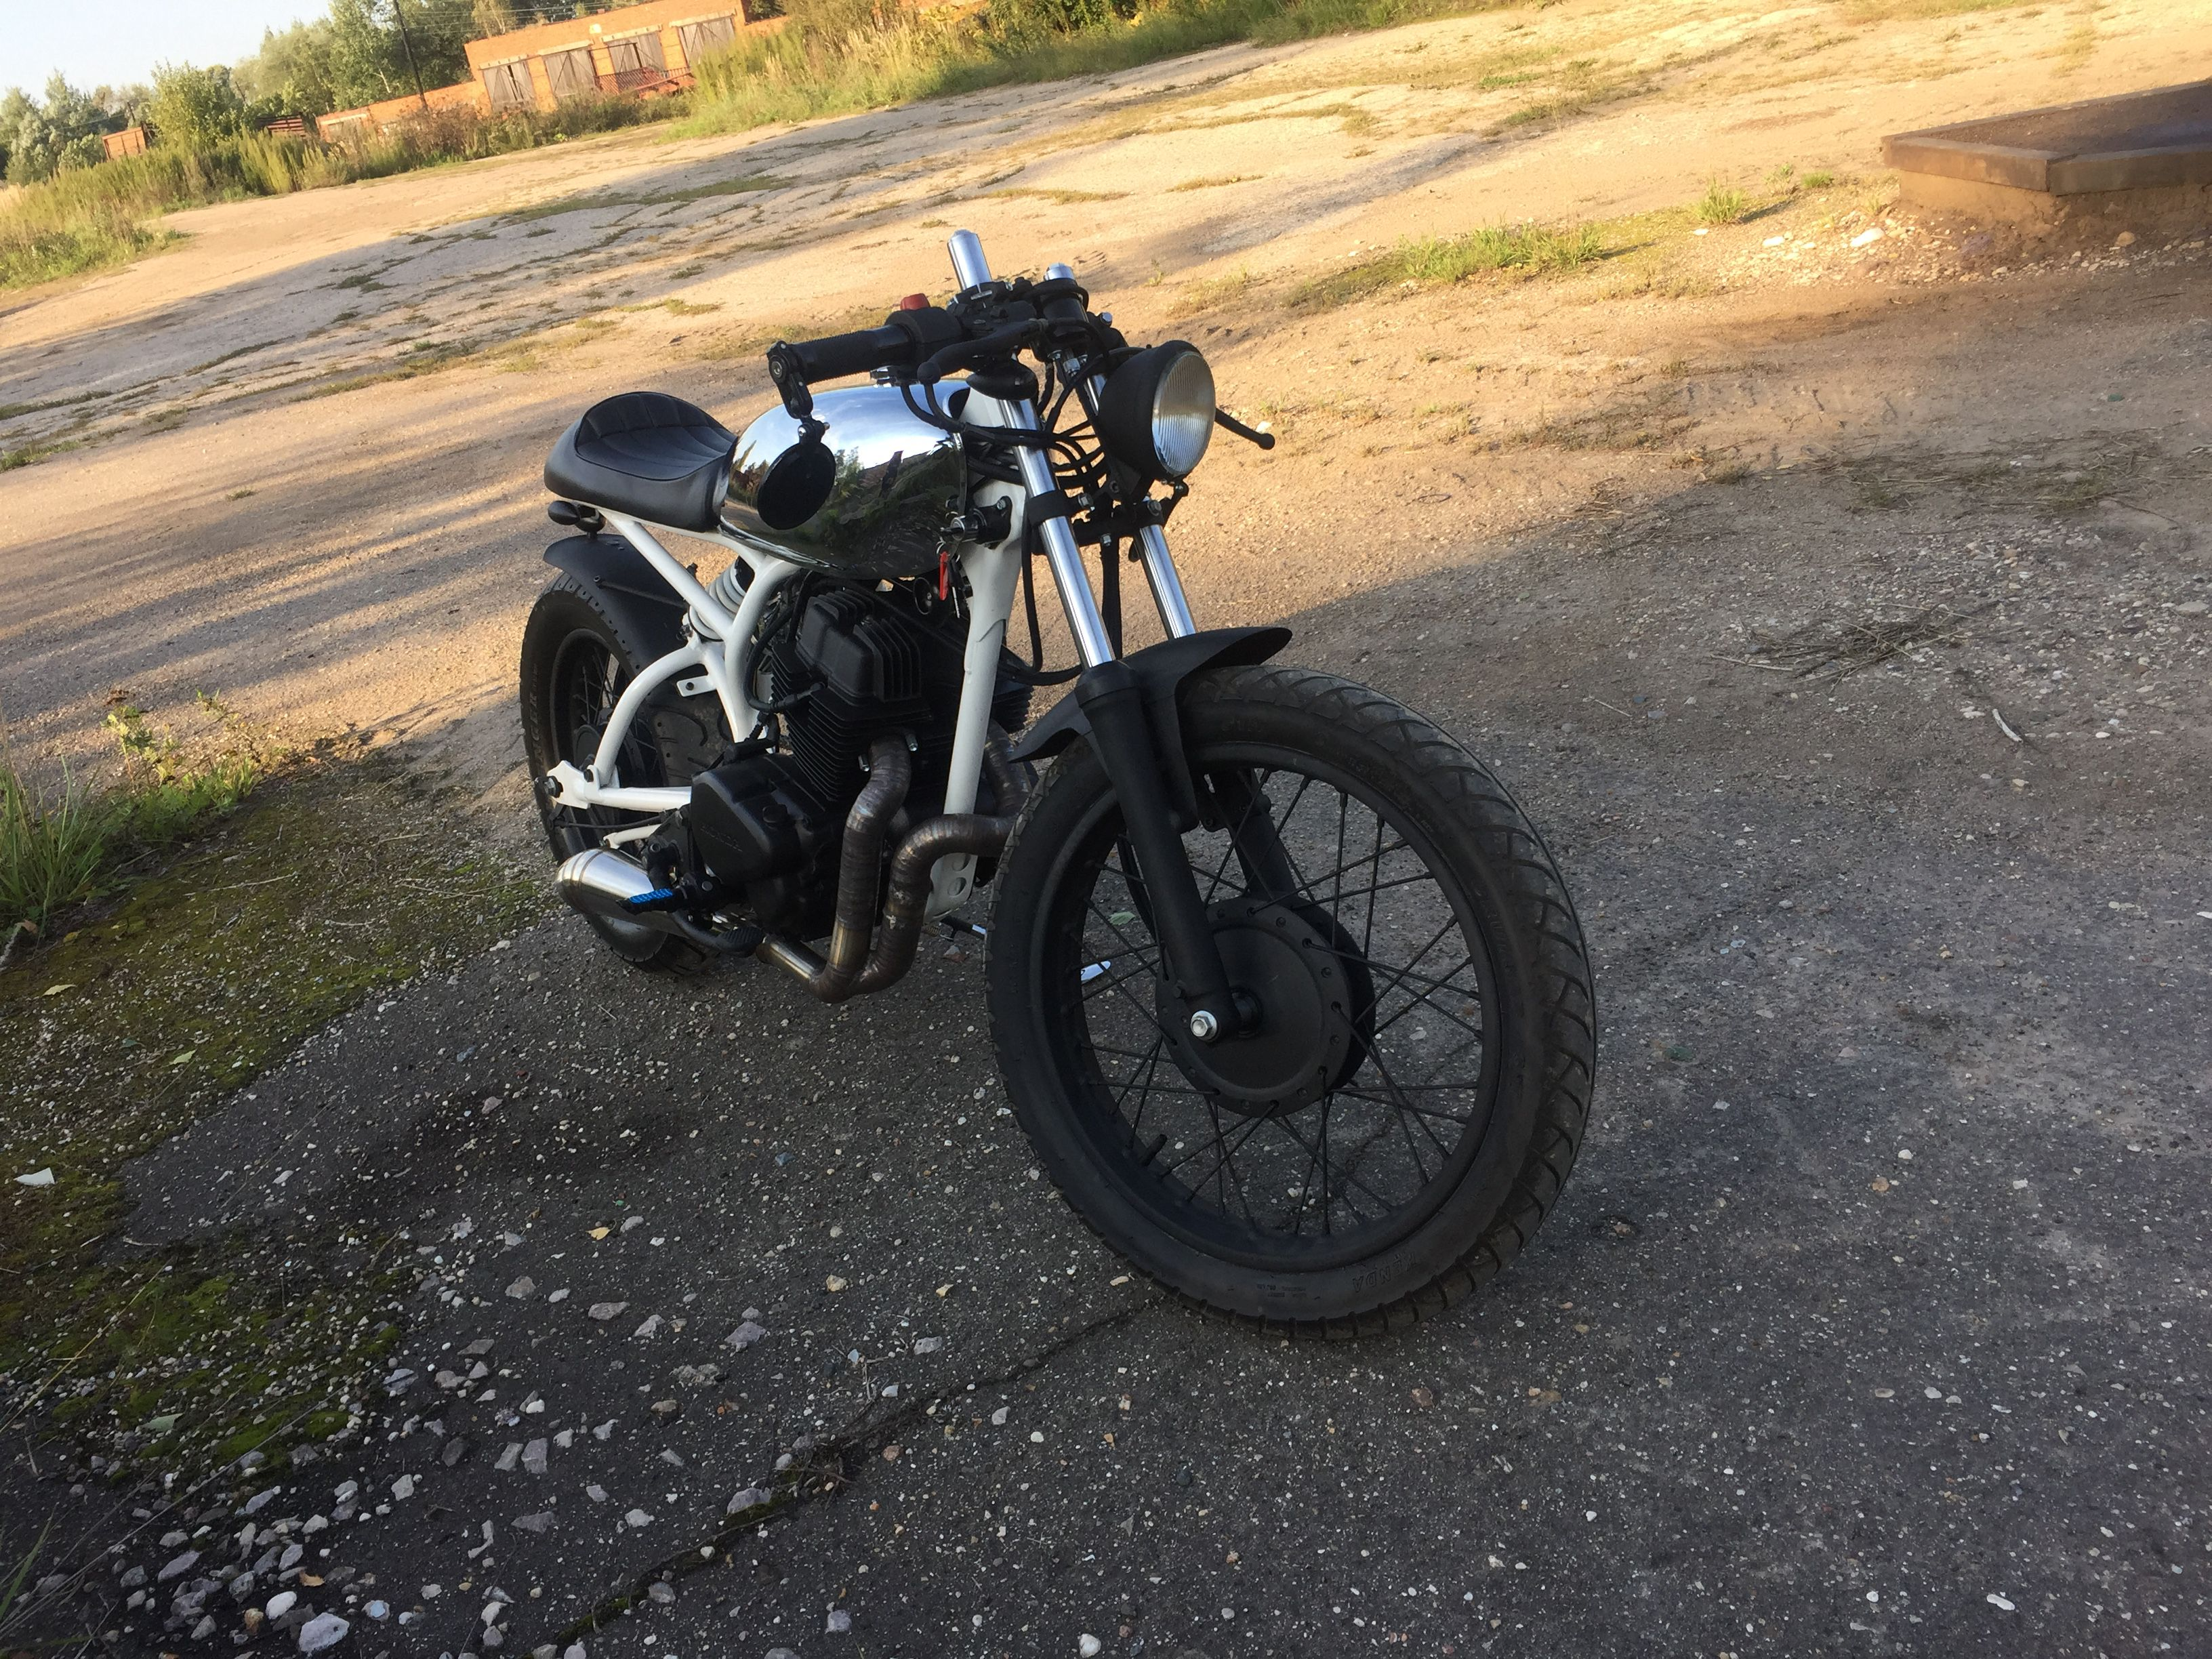 1983 honda cm250 camraclab caferacer злой brat tracker scrambler moscow dest91 bmw russia garage oldshcool moto auto bike mygaragemyrules custom mechanic master equipment homemade fast lucky sea cafe проект год стильный мастер закончил racer донор